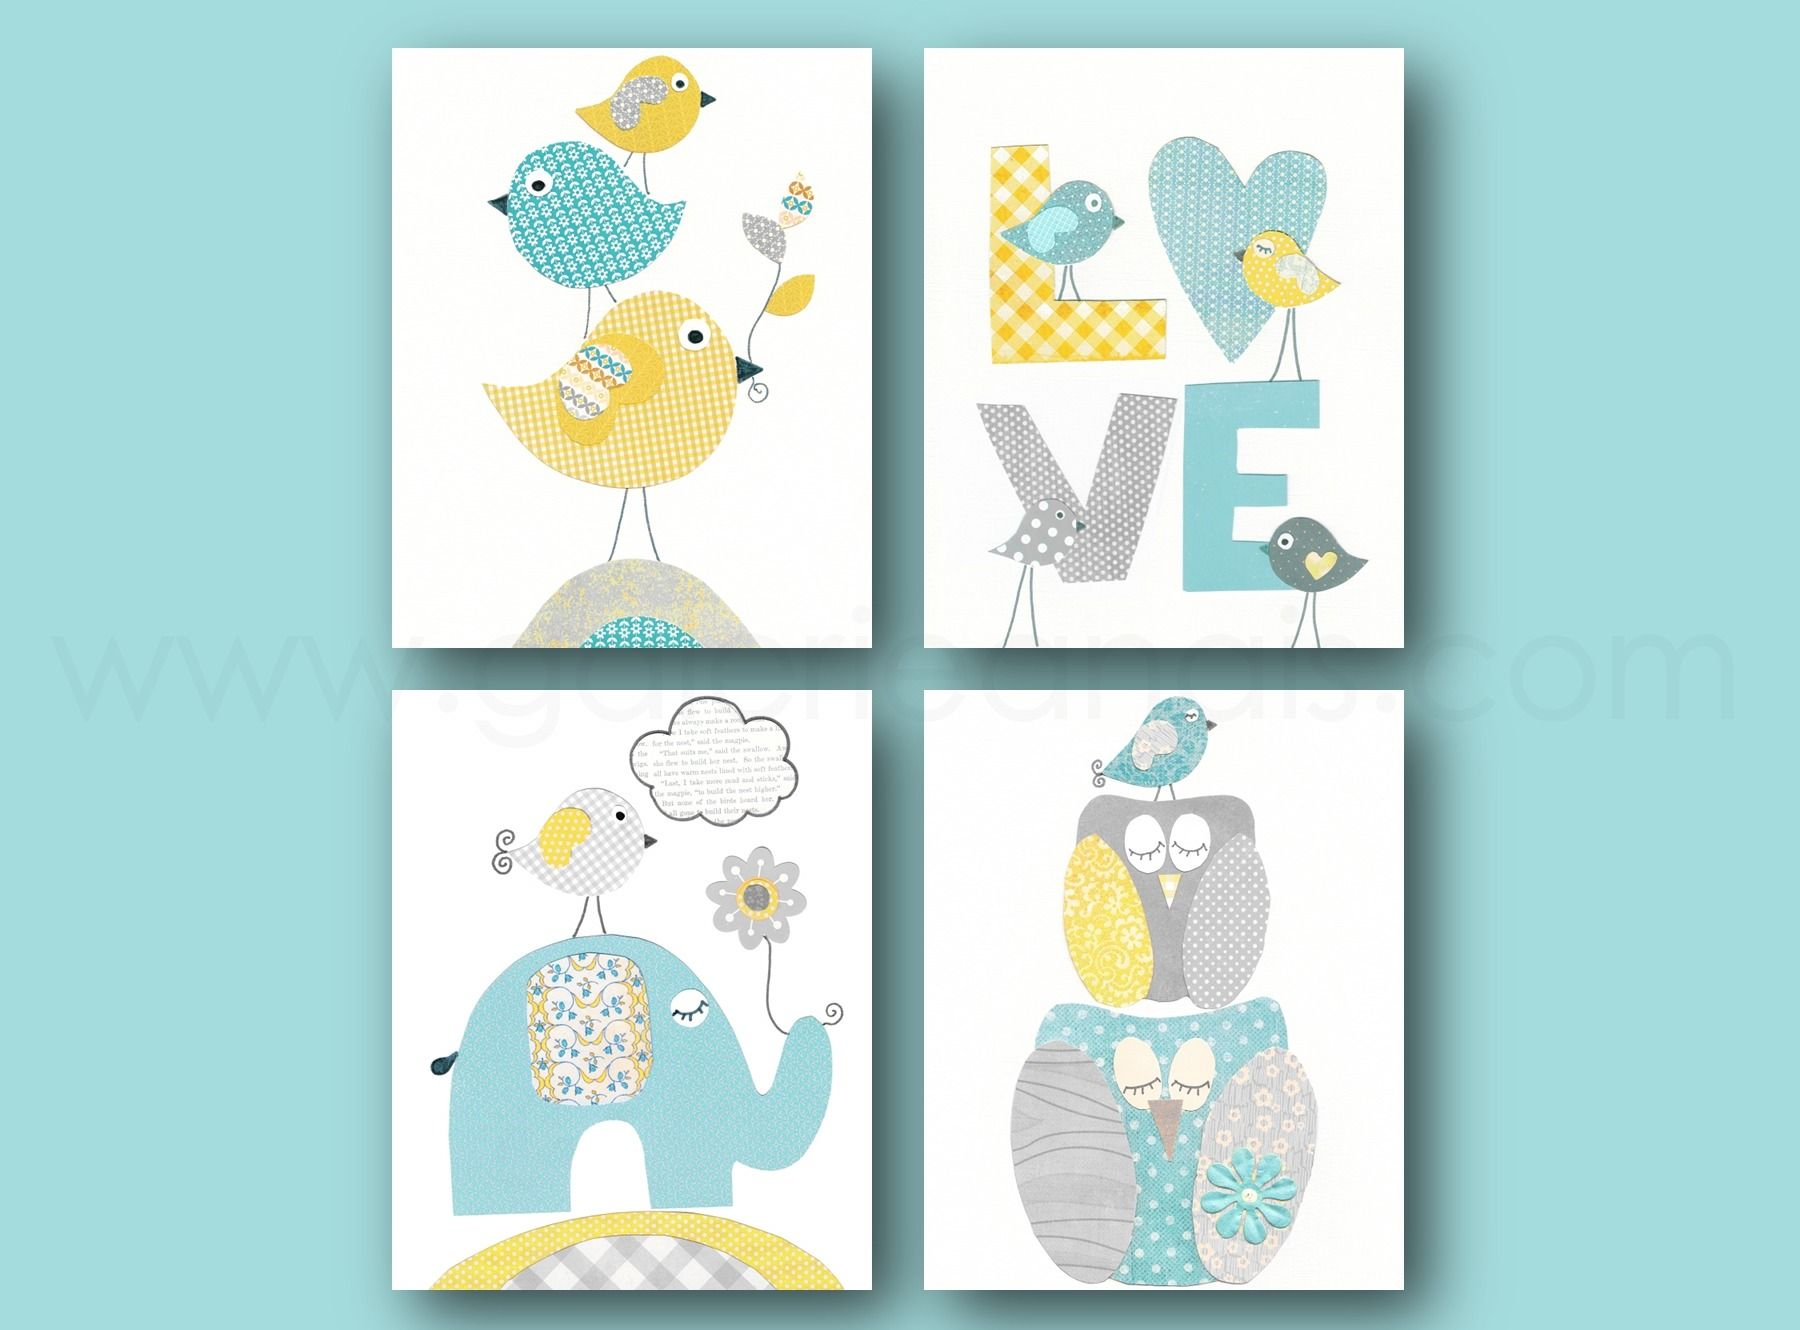 lot de 4 illustrations 18x24 cm pour chambre d 39 enfant et bebe aqua bleu jaune gris bb. Black Bedroom Furniture Sets. Home Design Ideas